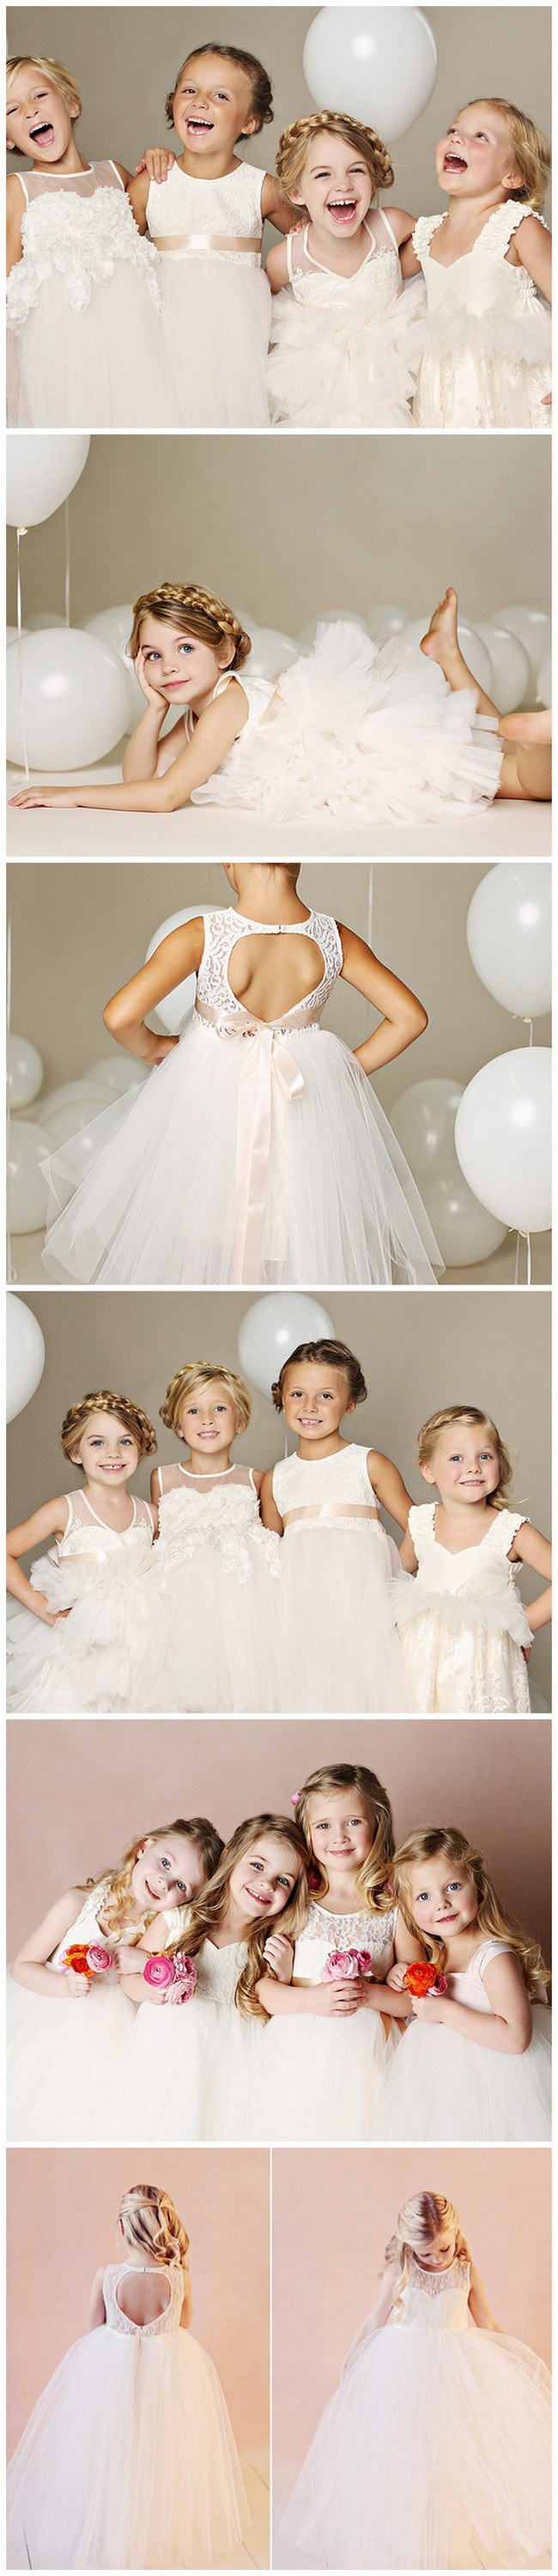 Quite Possible the cutest flower girl dresses on earth! https://confettidaydreams.com/flower-girl-dresses-fattie-pie/